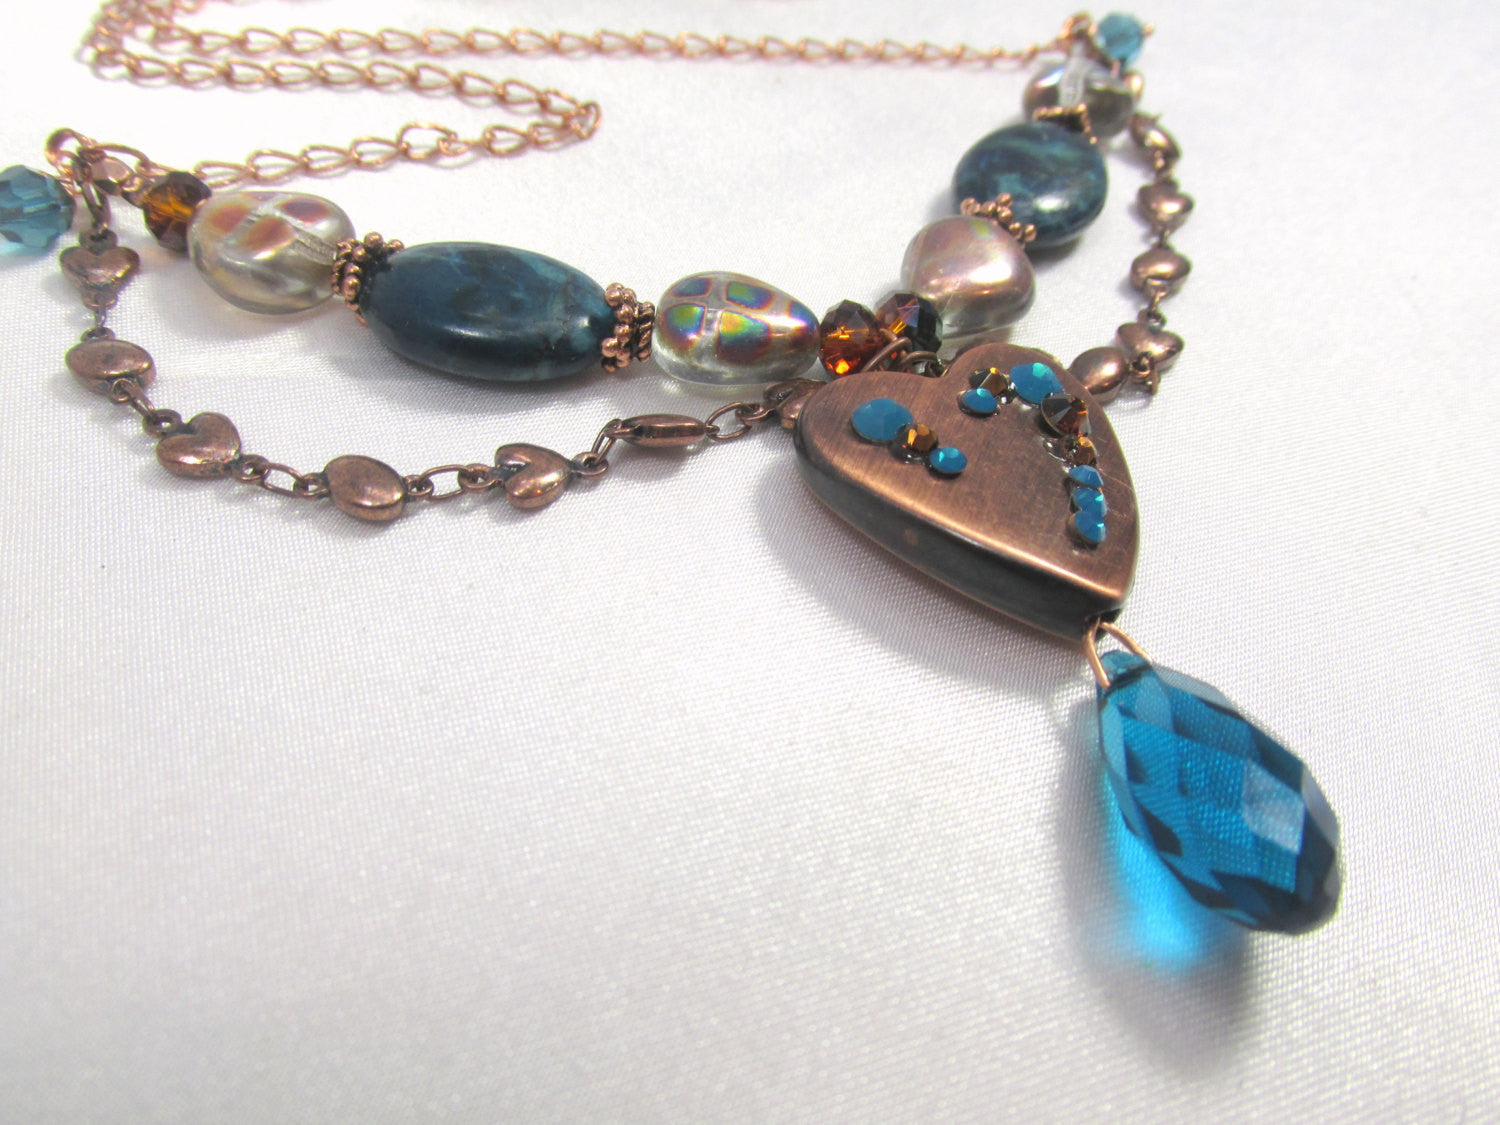 Copper Heart and Blue Teal Turquoise Crystal and Agate Double Strand Necklace - Odyssey Creations